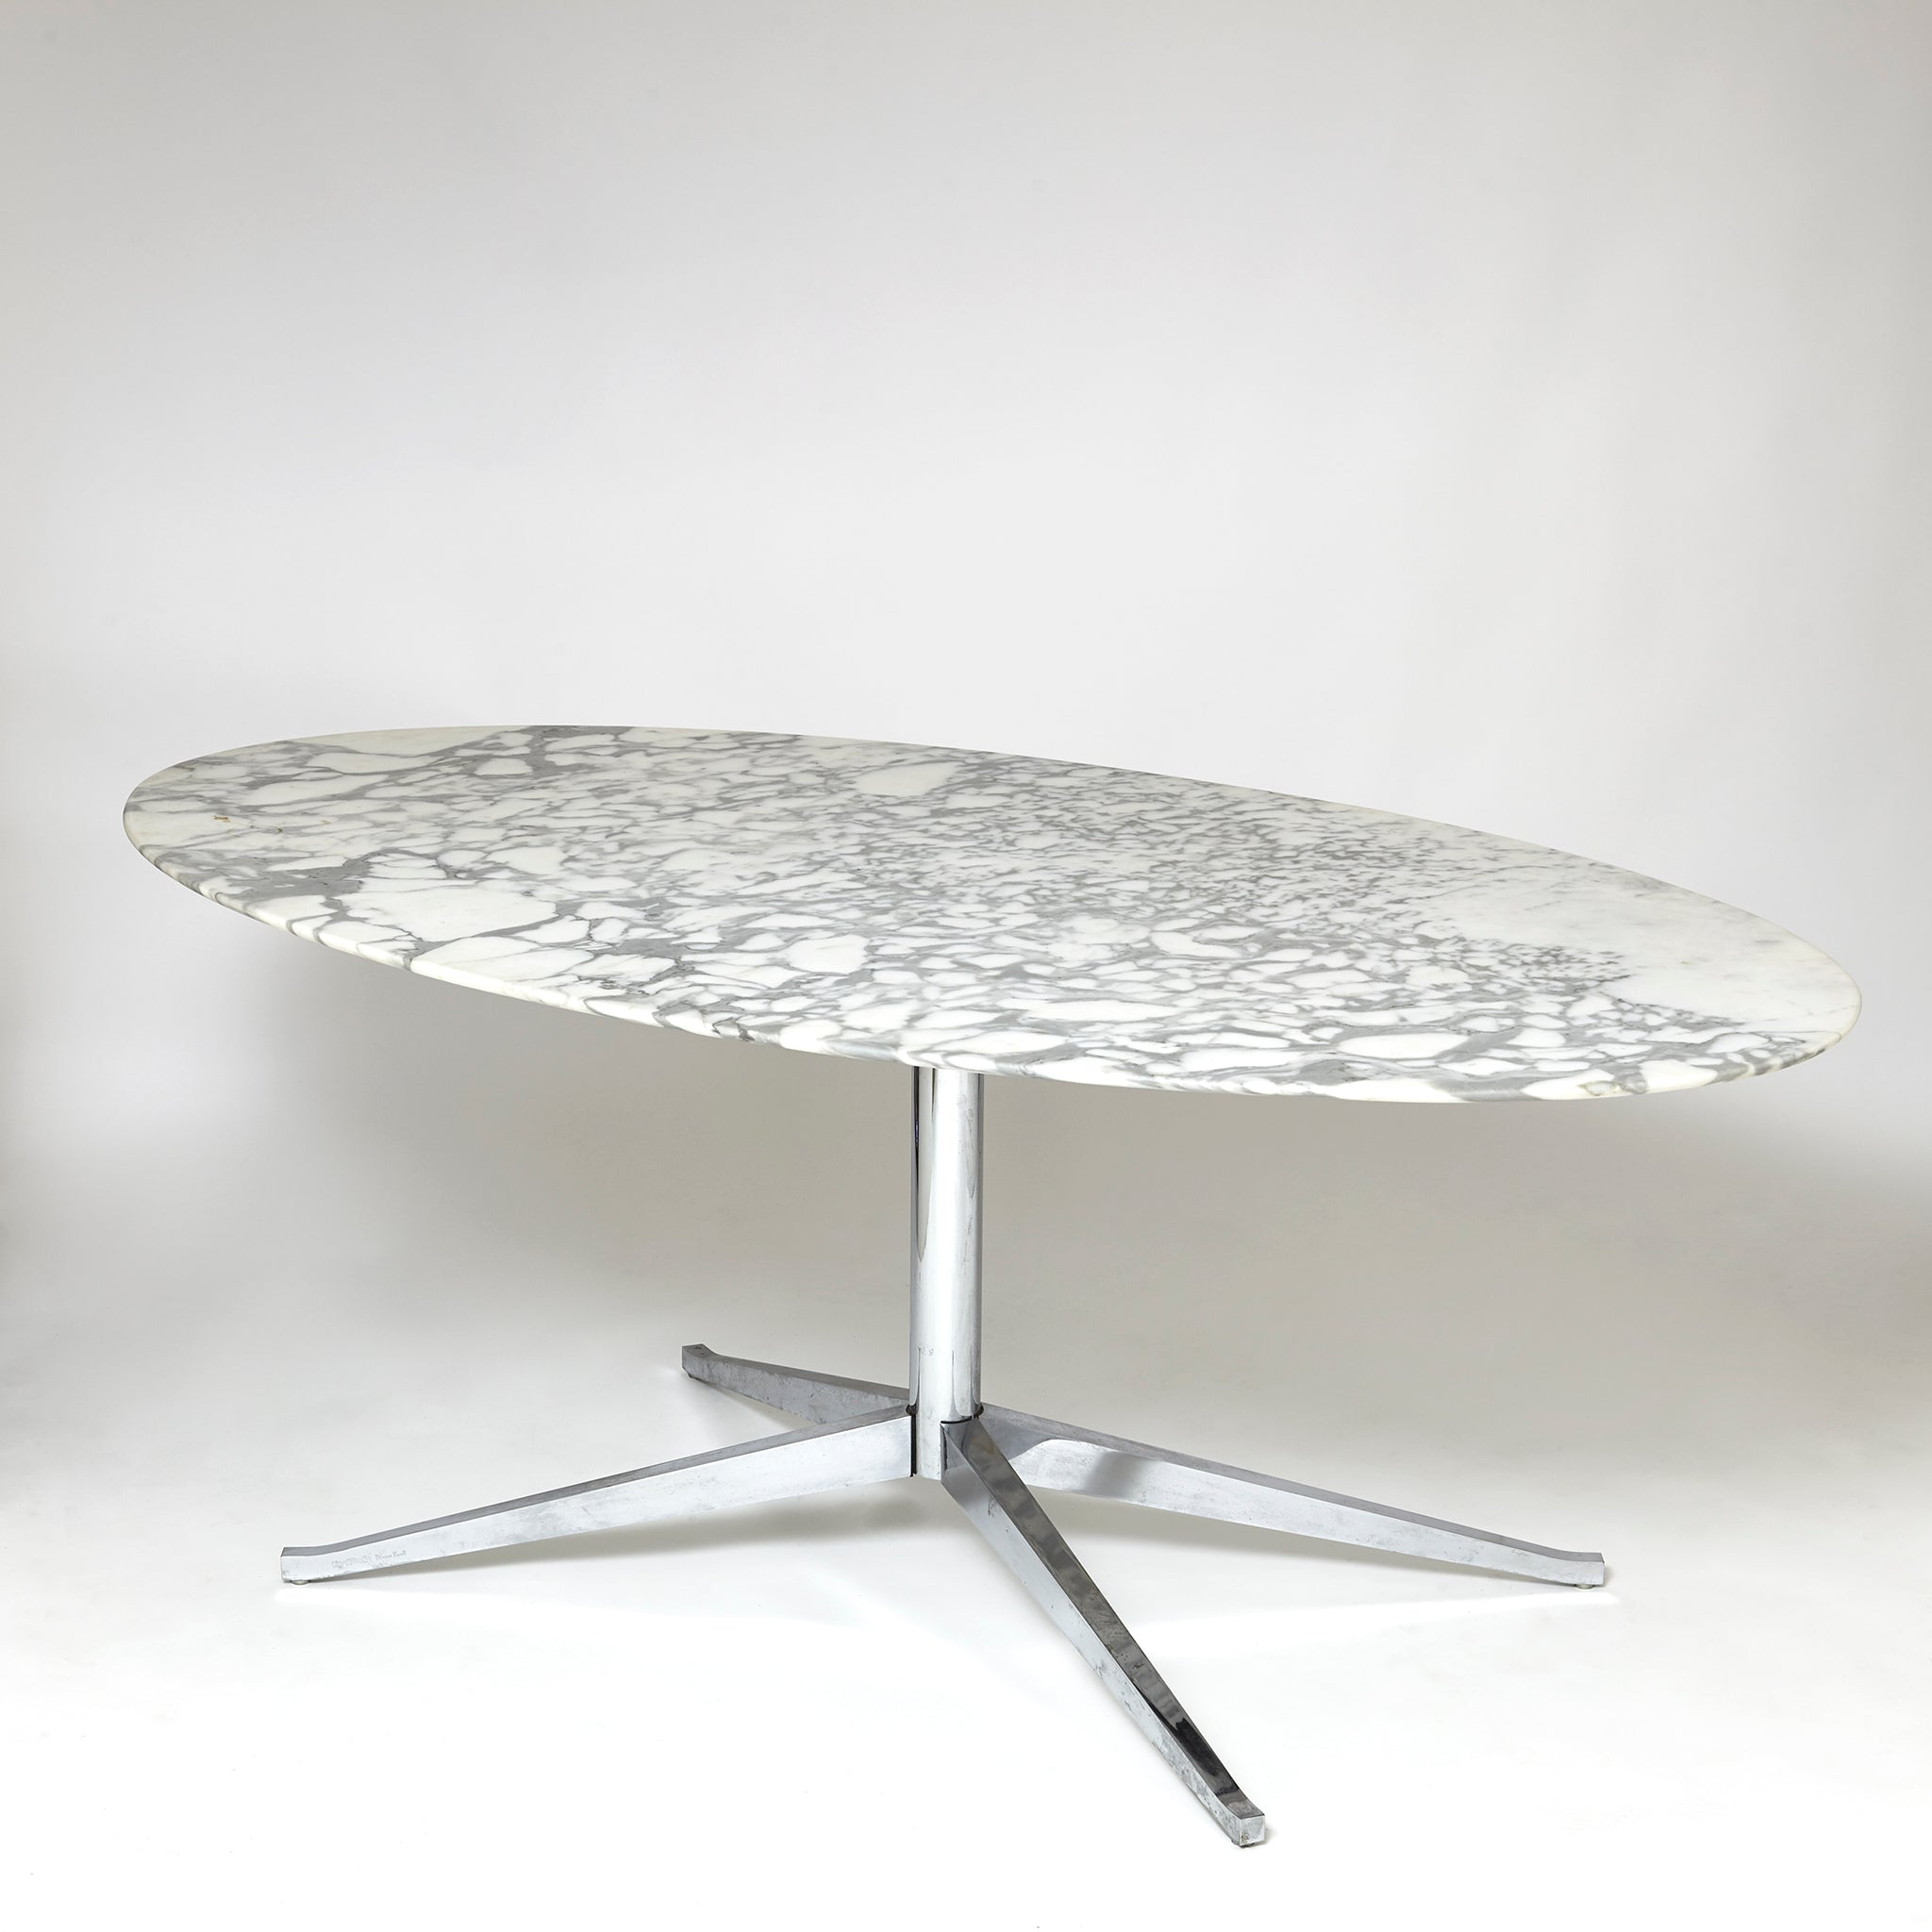 Oval Carrara marble table by Florence Knoll  circa 1980 .